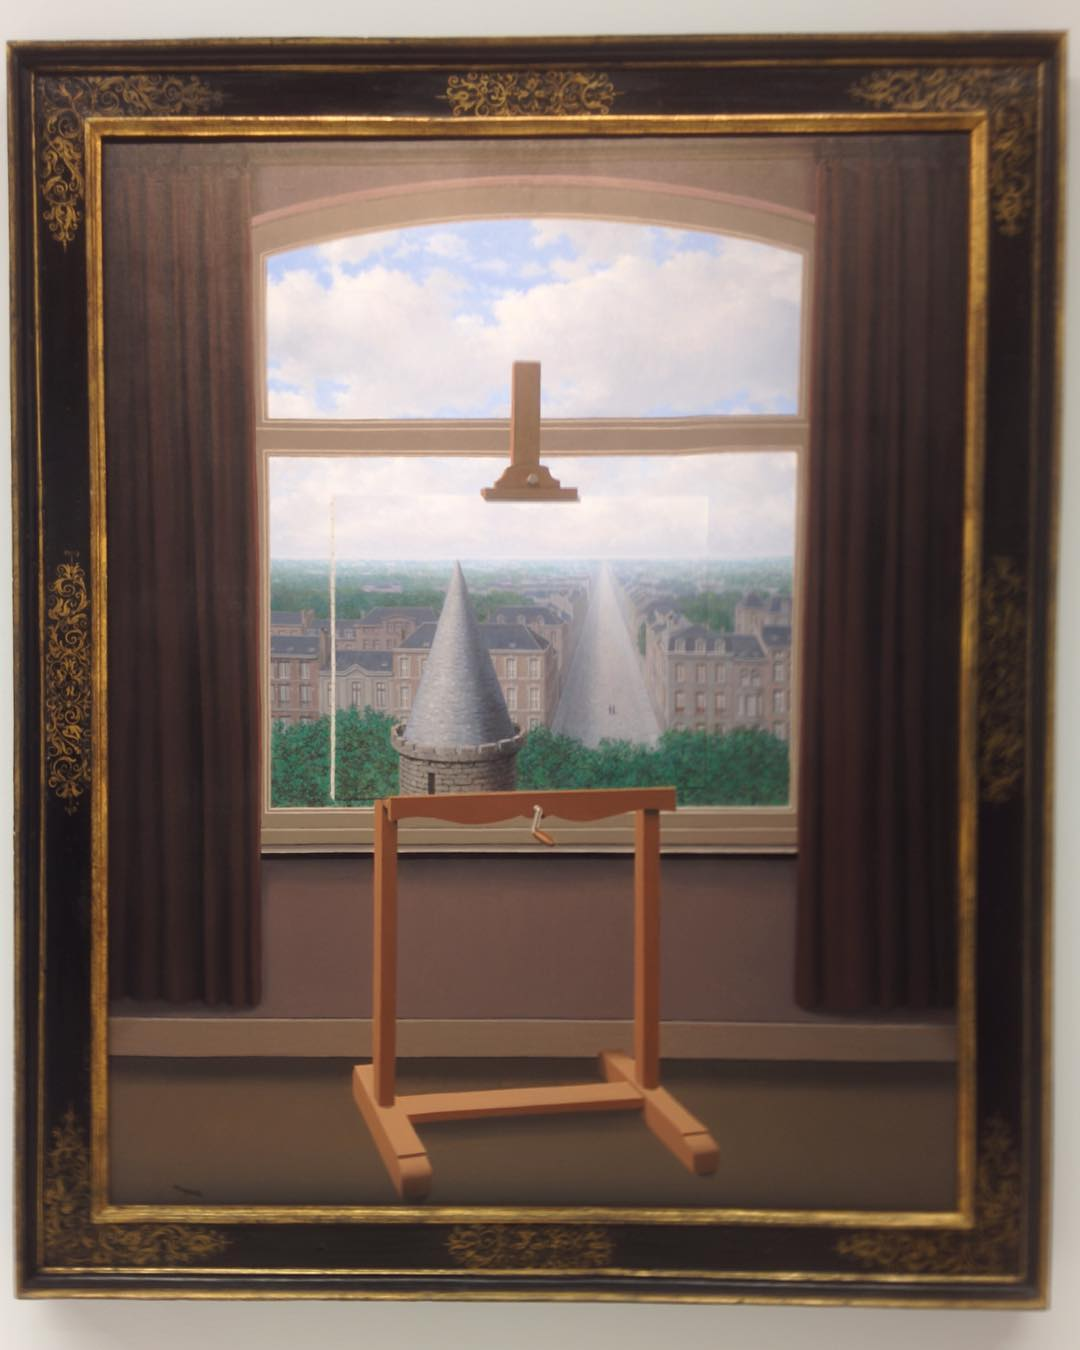 13 The Magritte retrospective that opened yesterday at Centre Pompidouhellip